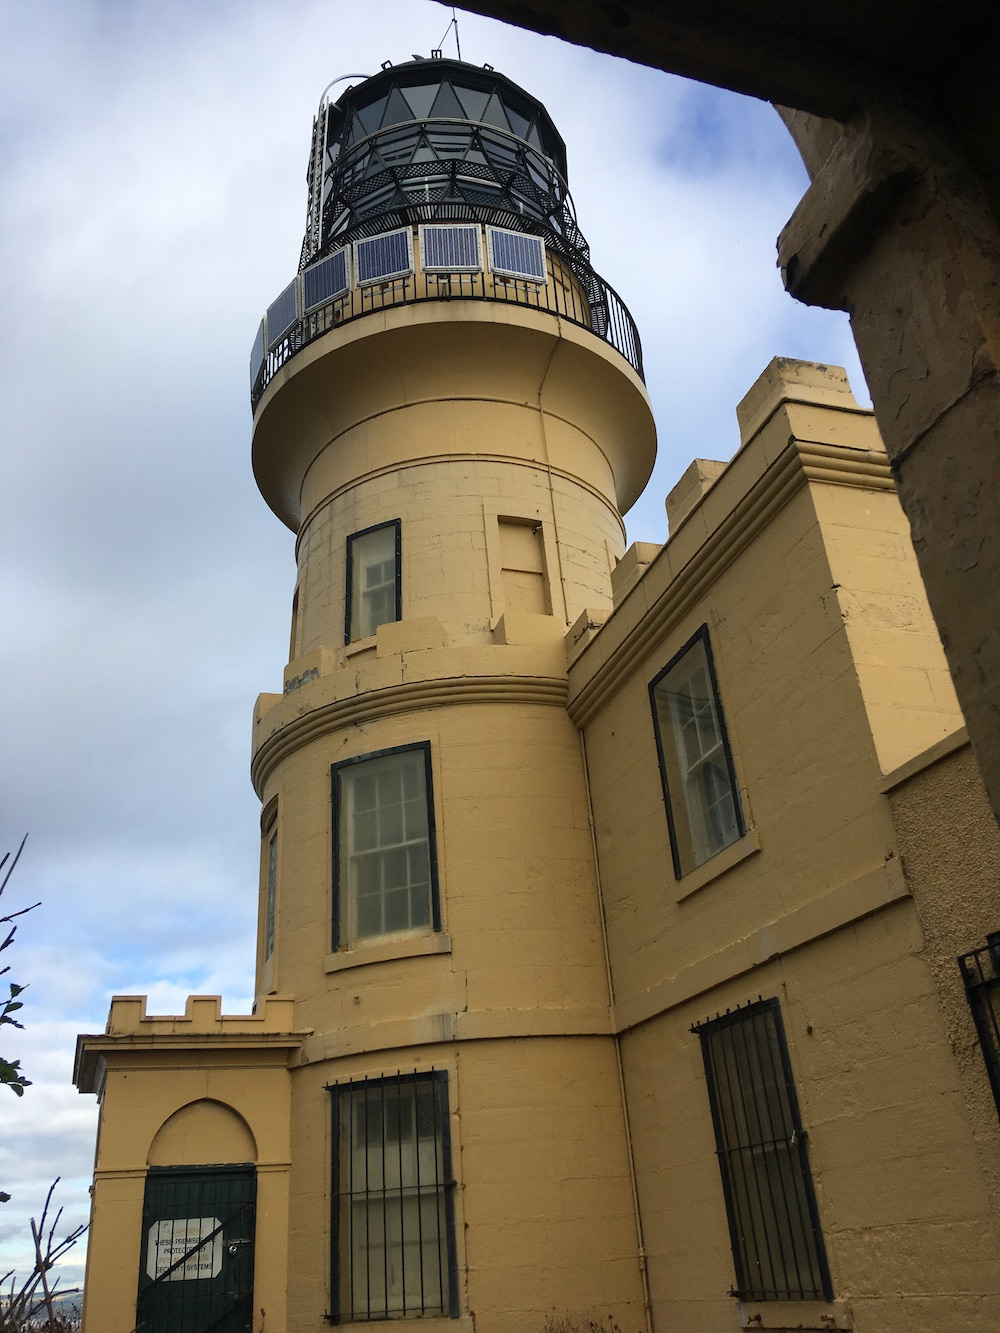 Inchkeith lighthouse